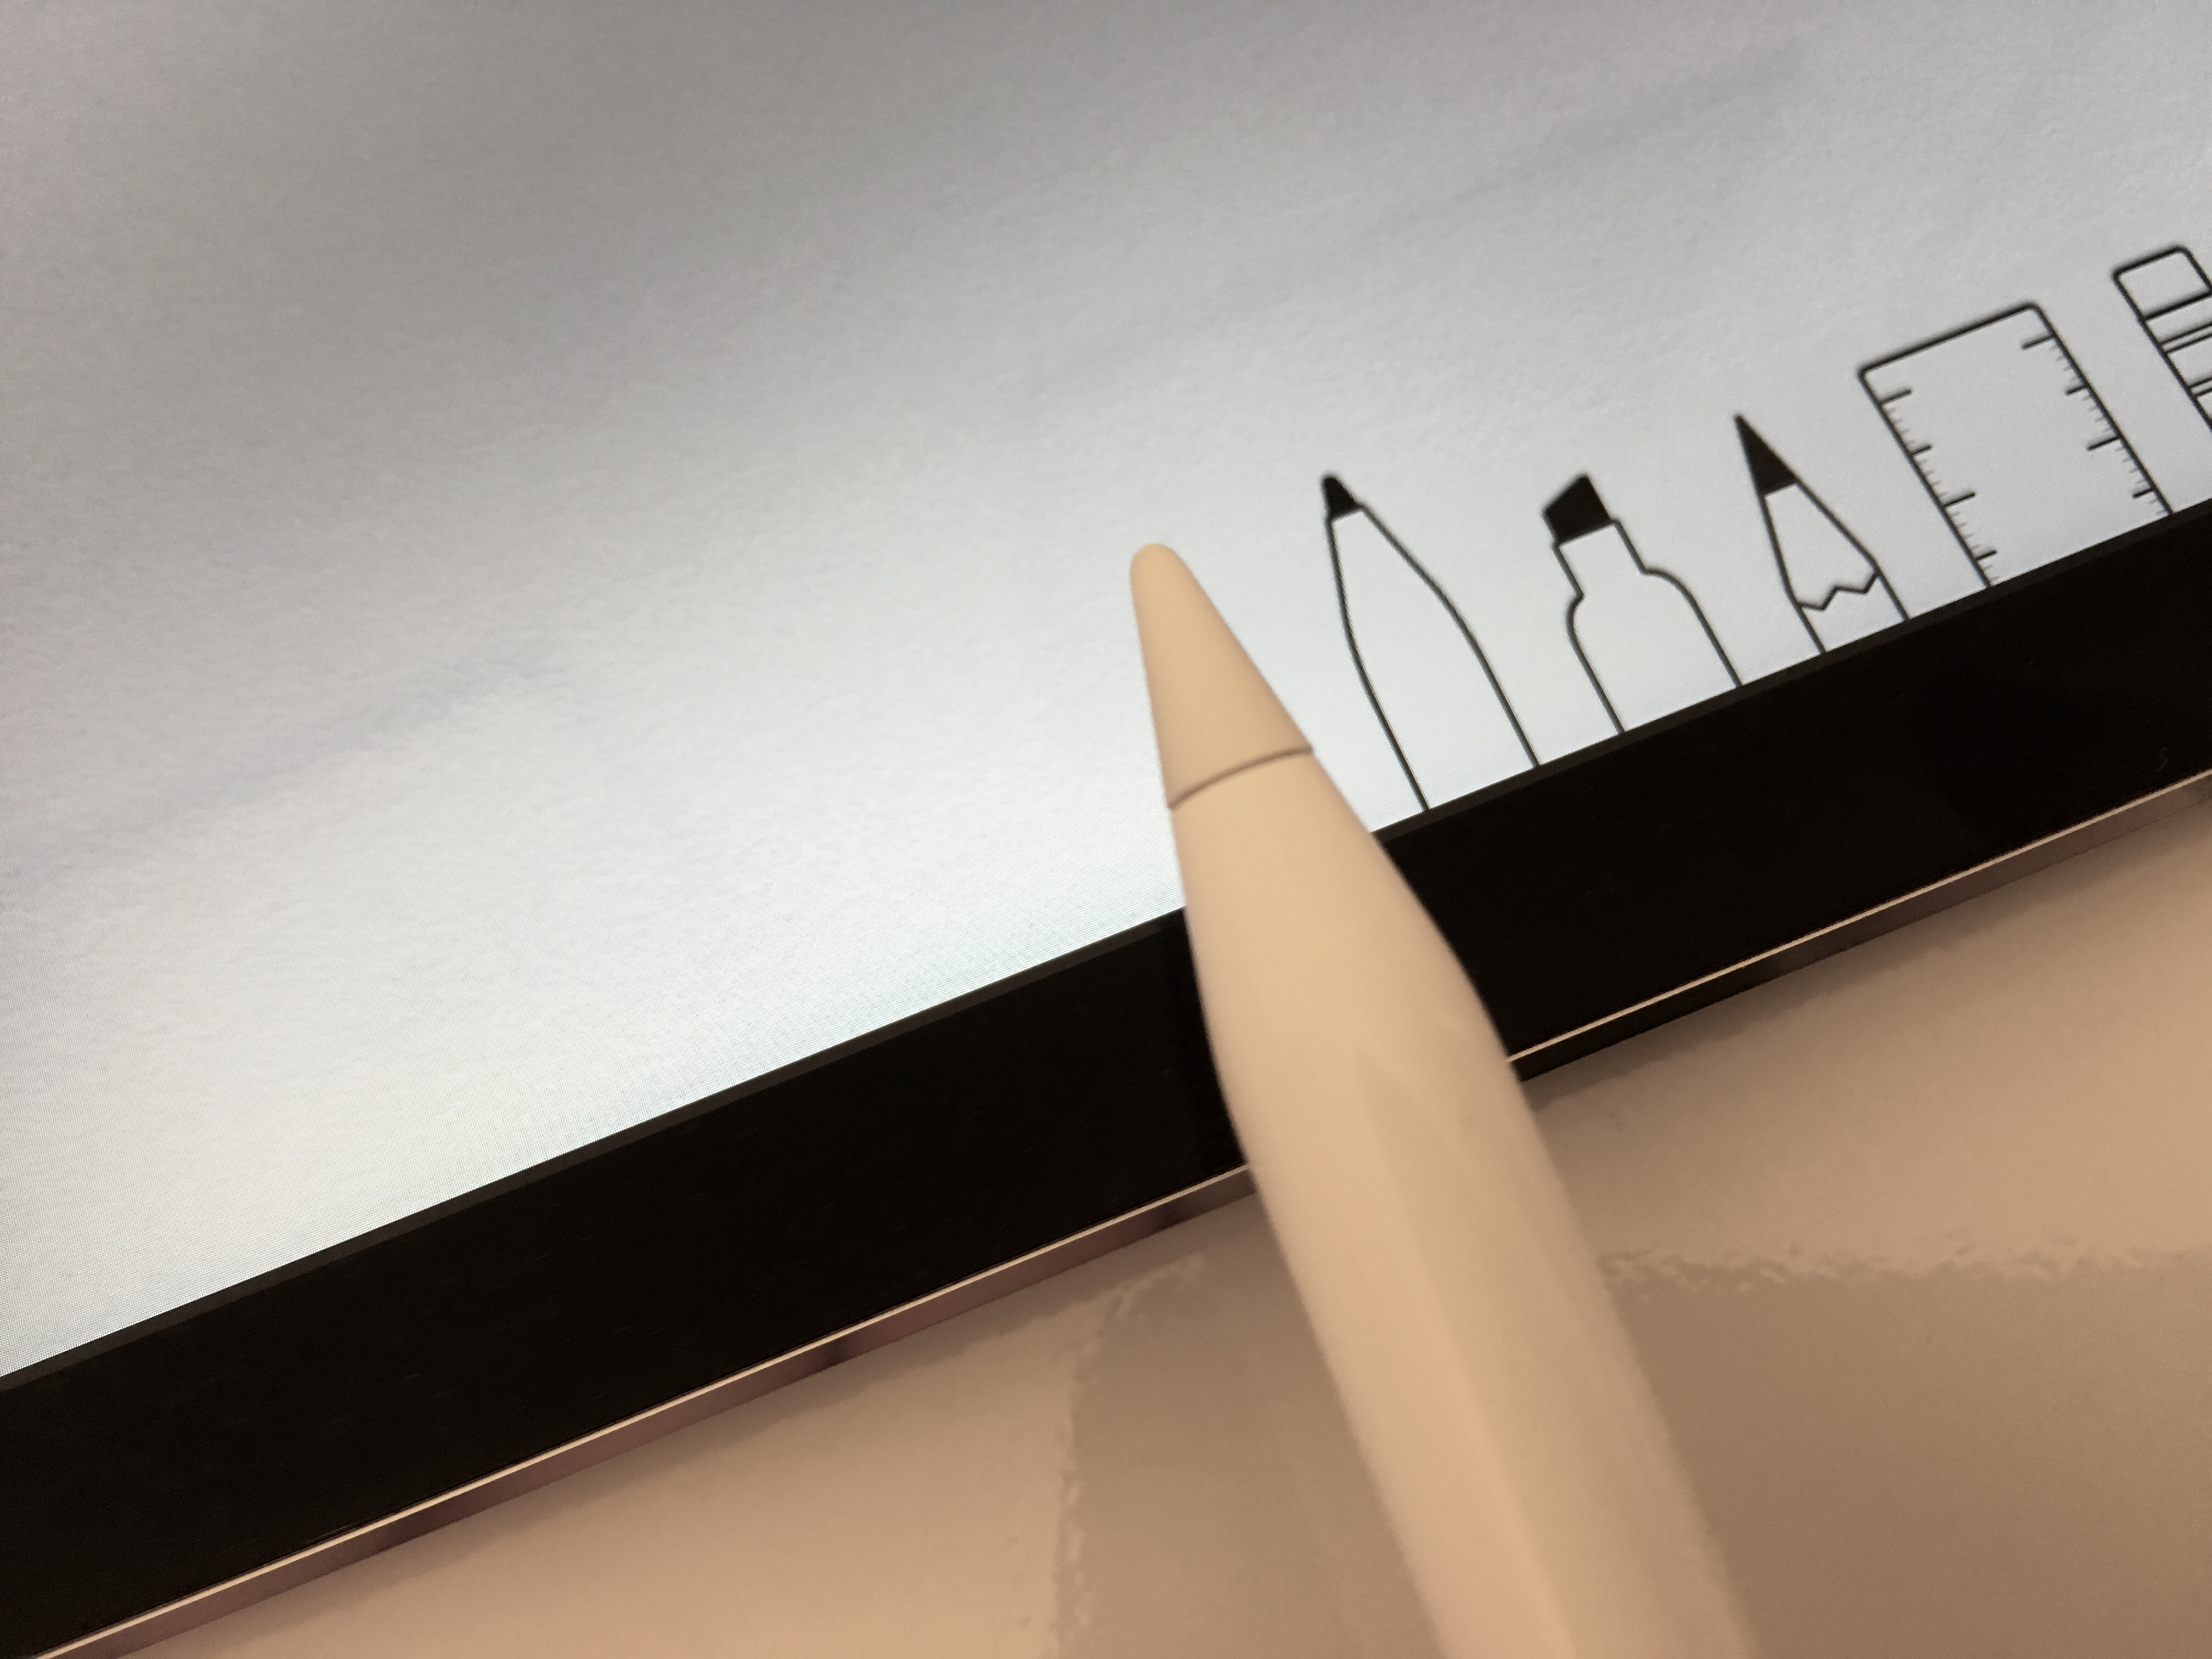 Apple Pencil hands-on 9